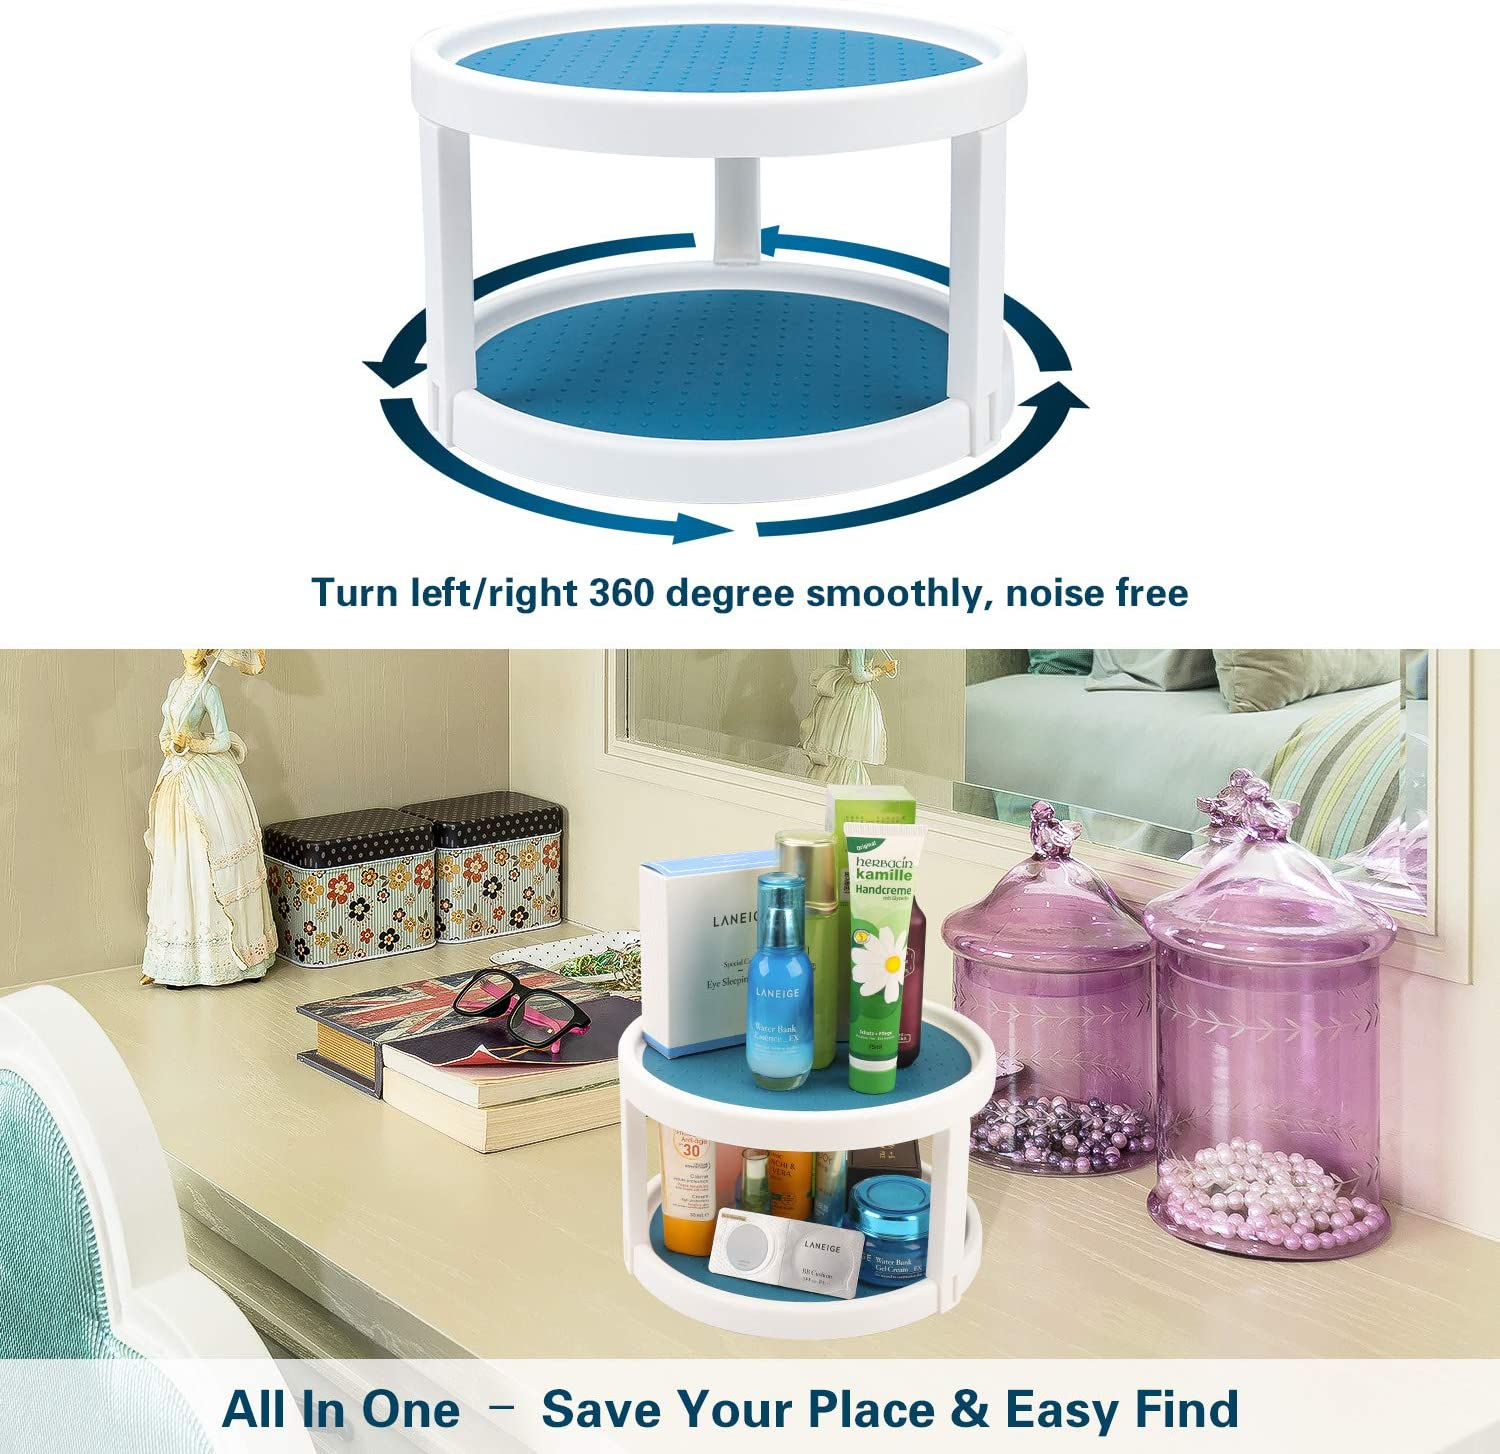 9inch Rotating Kitchen Spice Organization for Pantry Countertop Shelf Vanity Table Bathroom Condiment Display Stand ledorr 2-Tier Non-Slip Spinning Rack Turntable Cabinet Organizer Lazy Susan